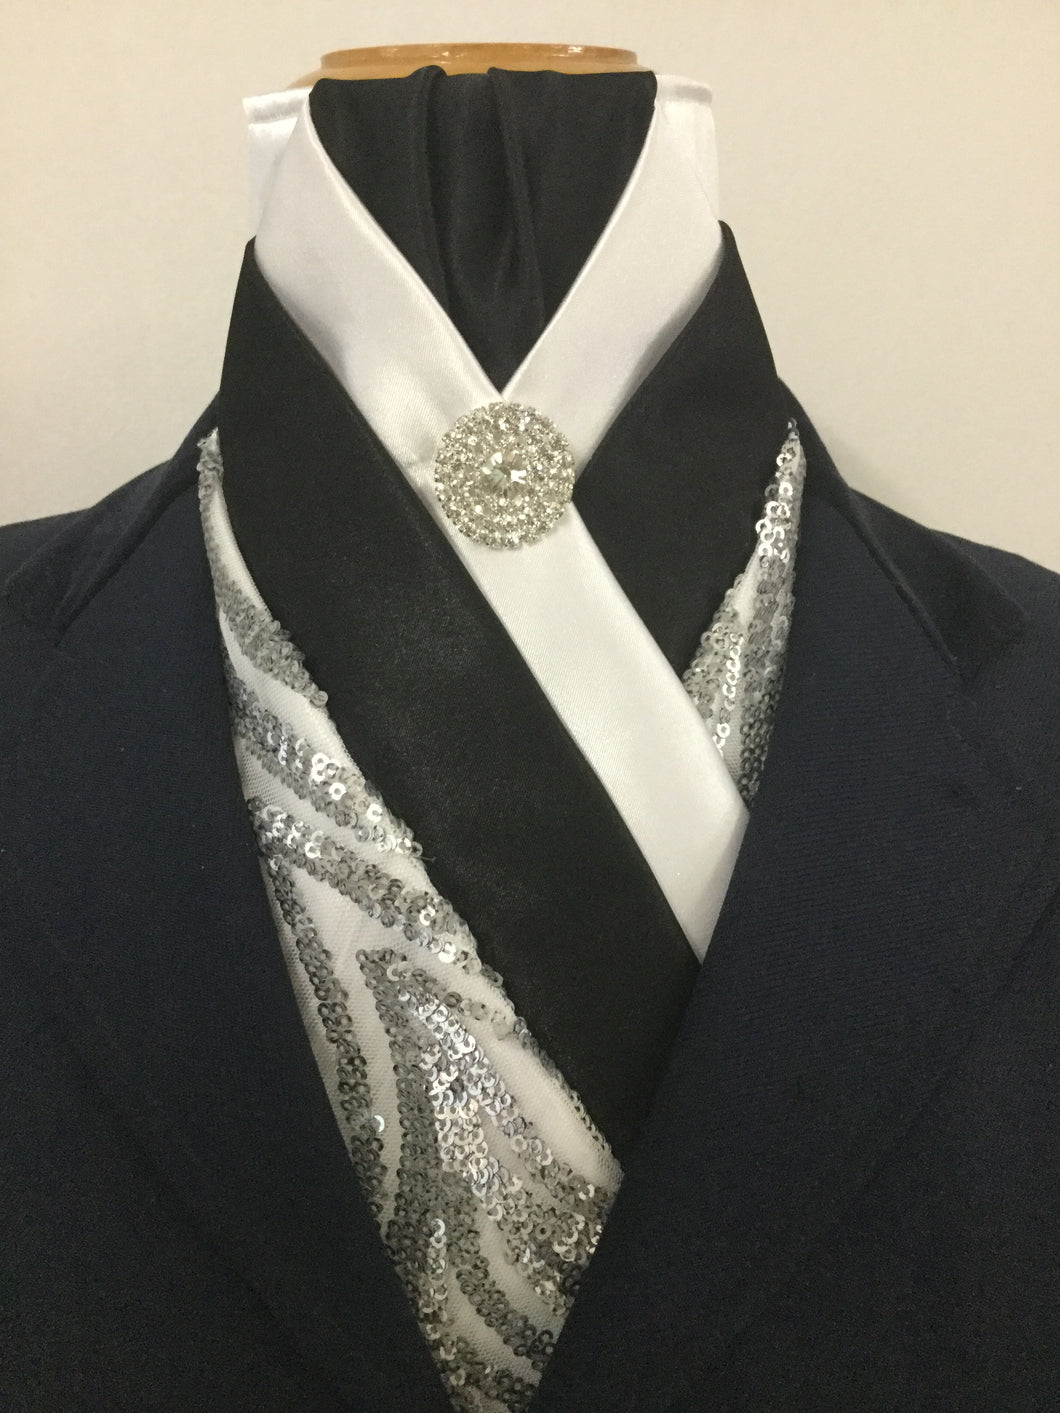 HHD 'Bella' White & Black Satin Pretied Stock Tie with Metalic Sequins